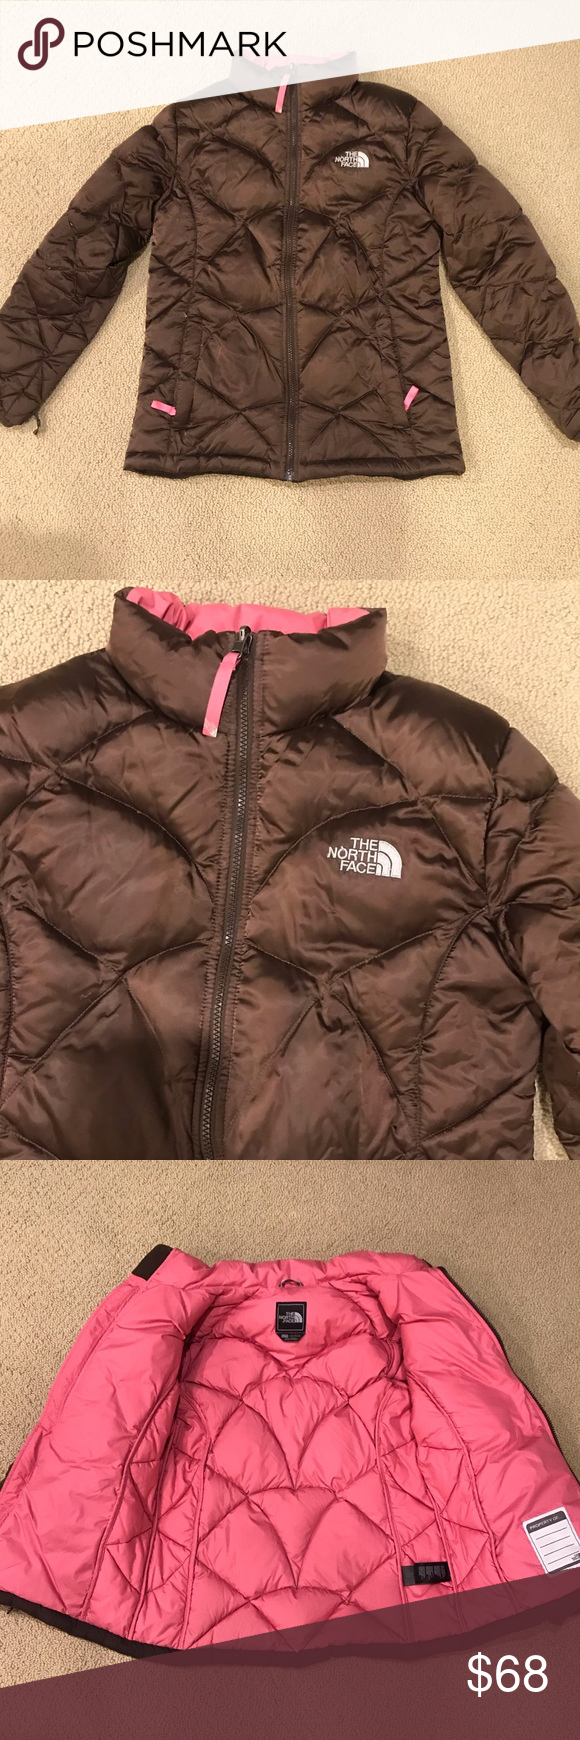 The North Face Brown And Pink Puffer Ski Jacket Ski Jacket Kids North Face North Face Jacket [ 1740 x 580 Pixel ]